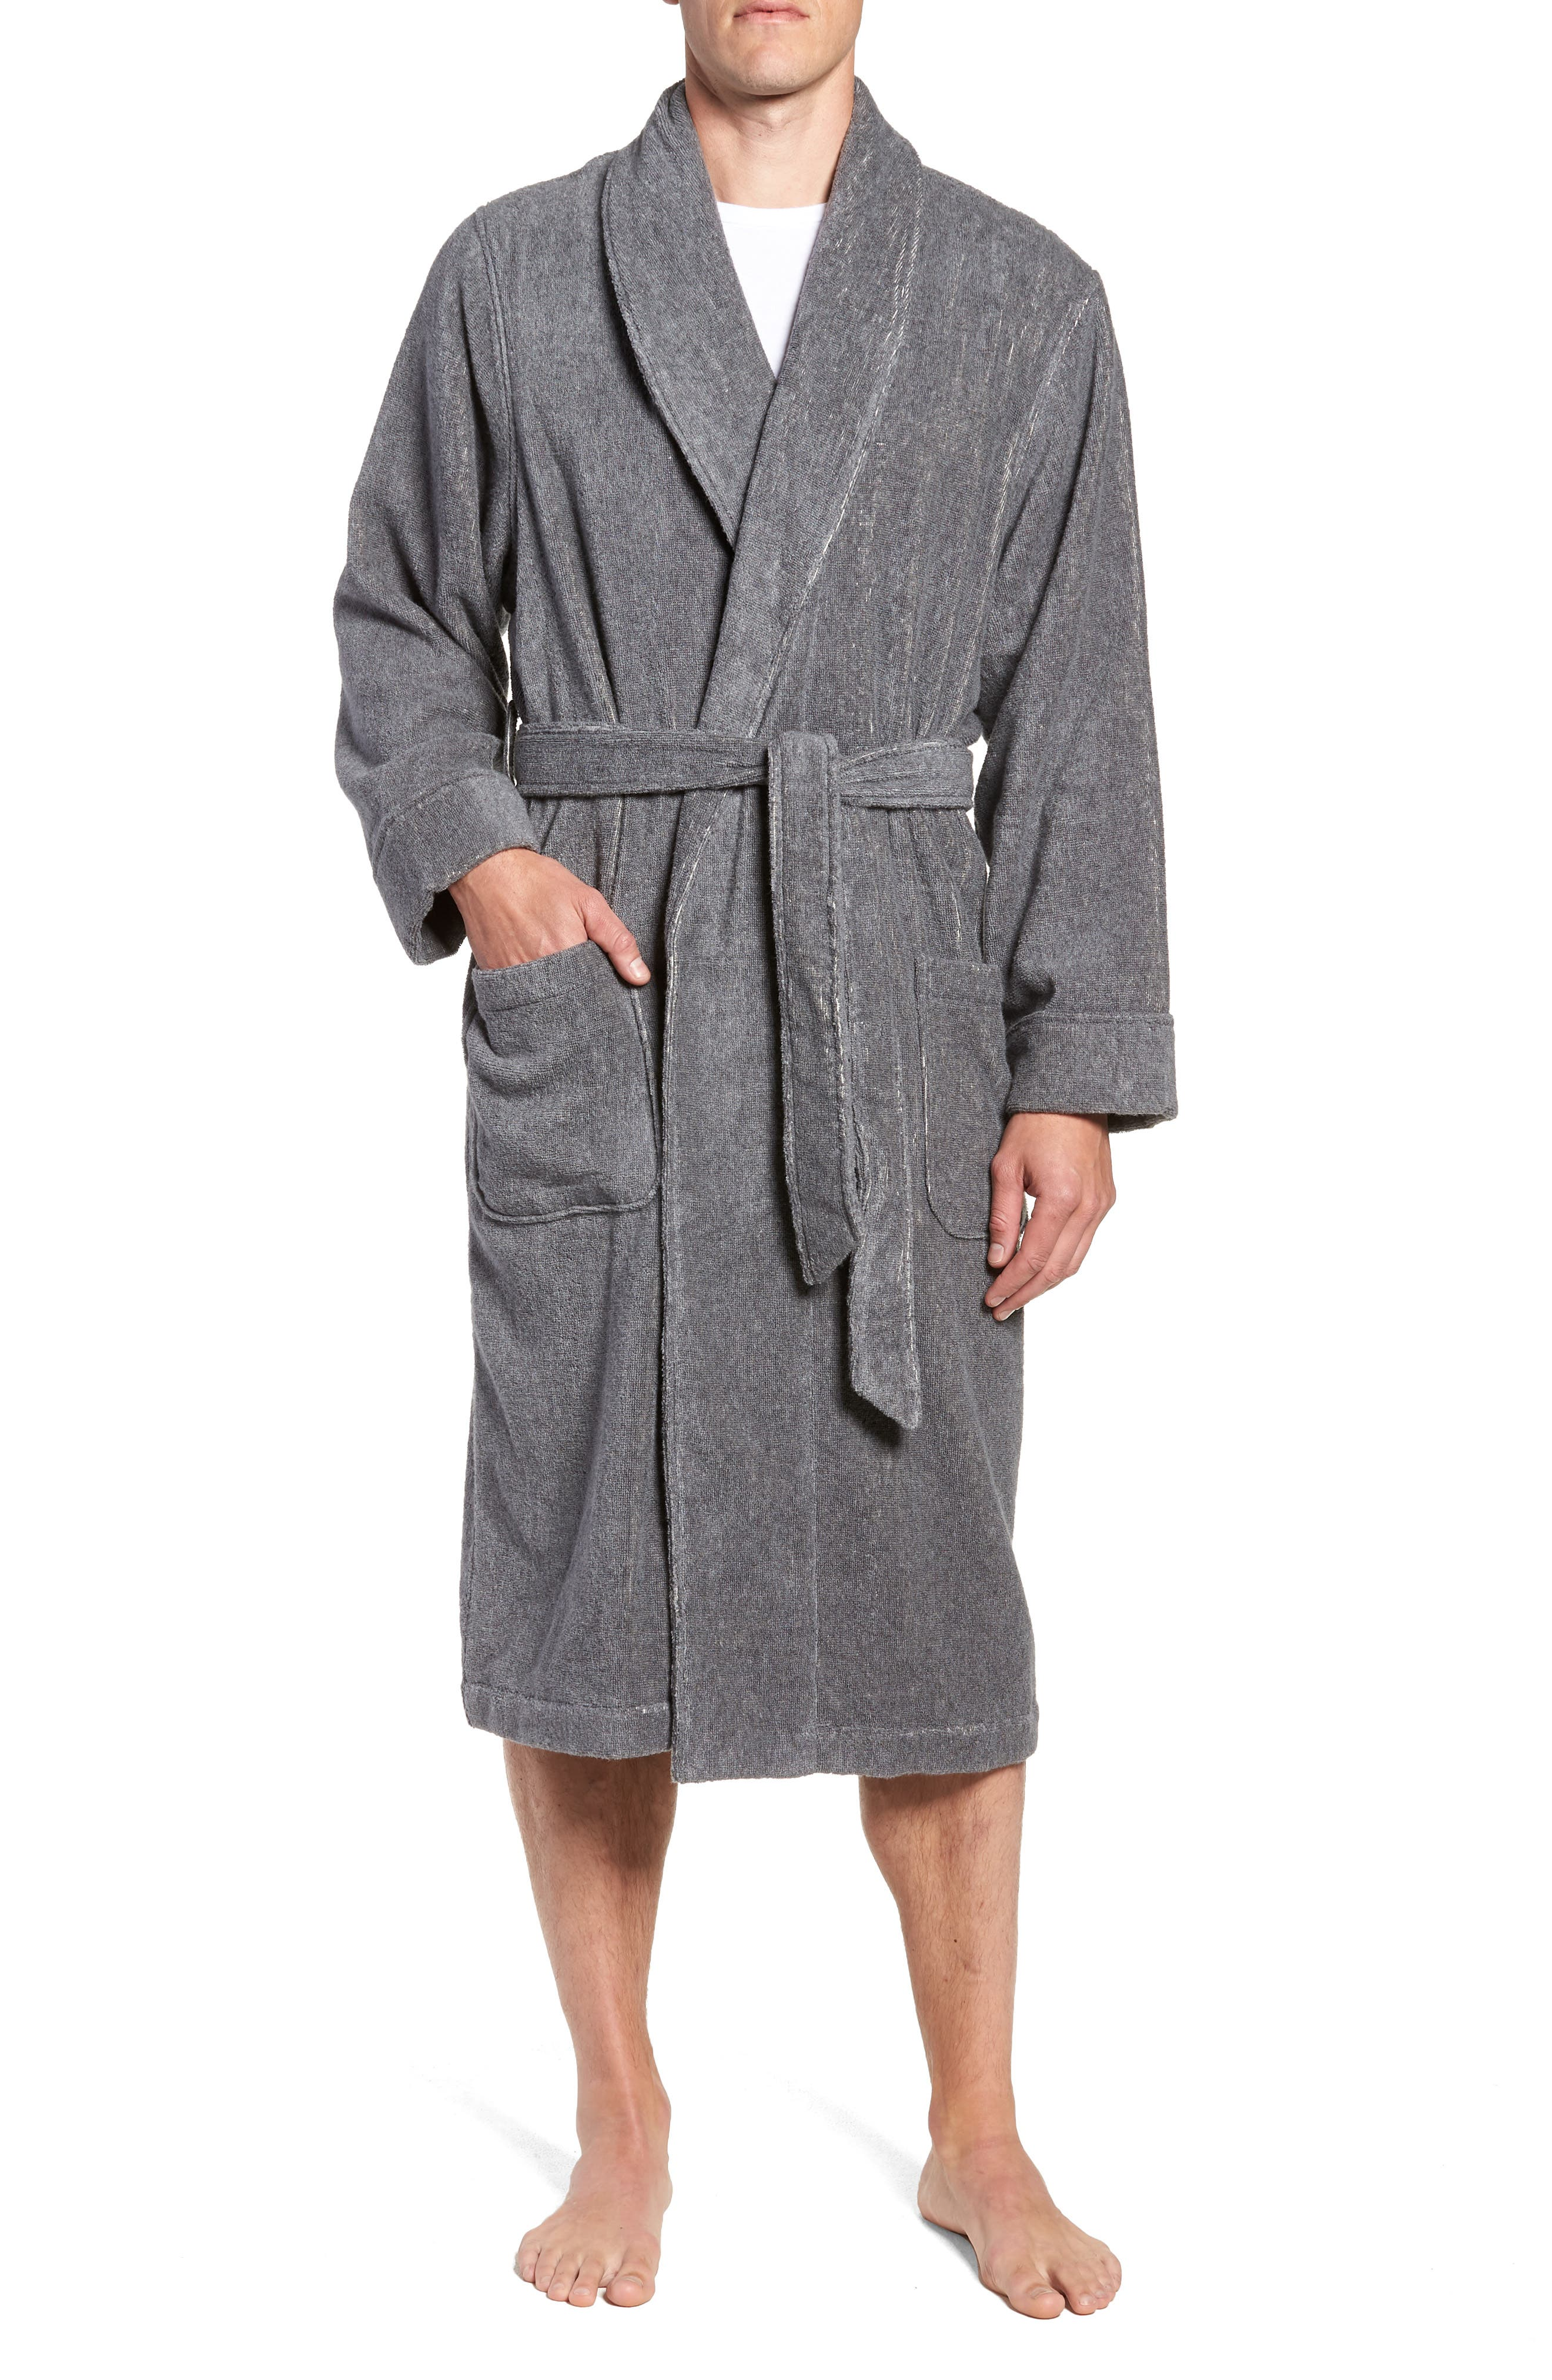 NORDSTROM MEN'S SHOP, Hydro Cotton Terry Robe, Main thumbnail 1, color, 022